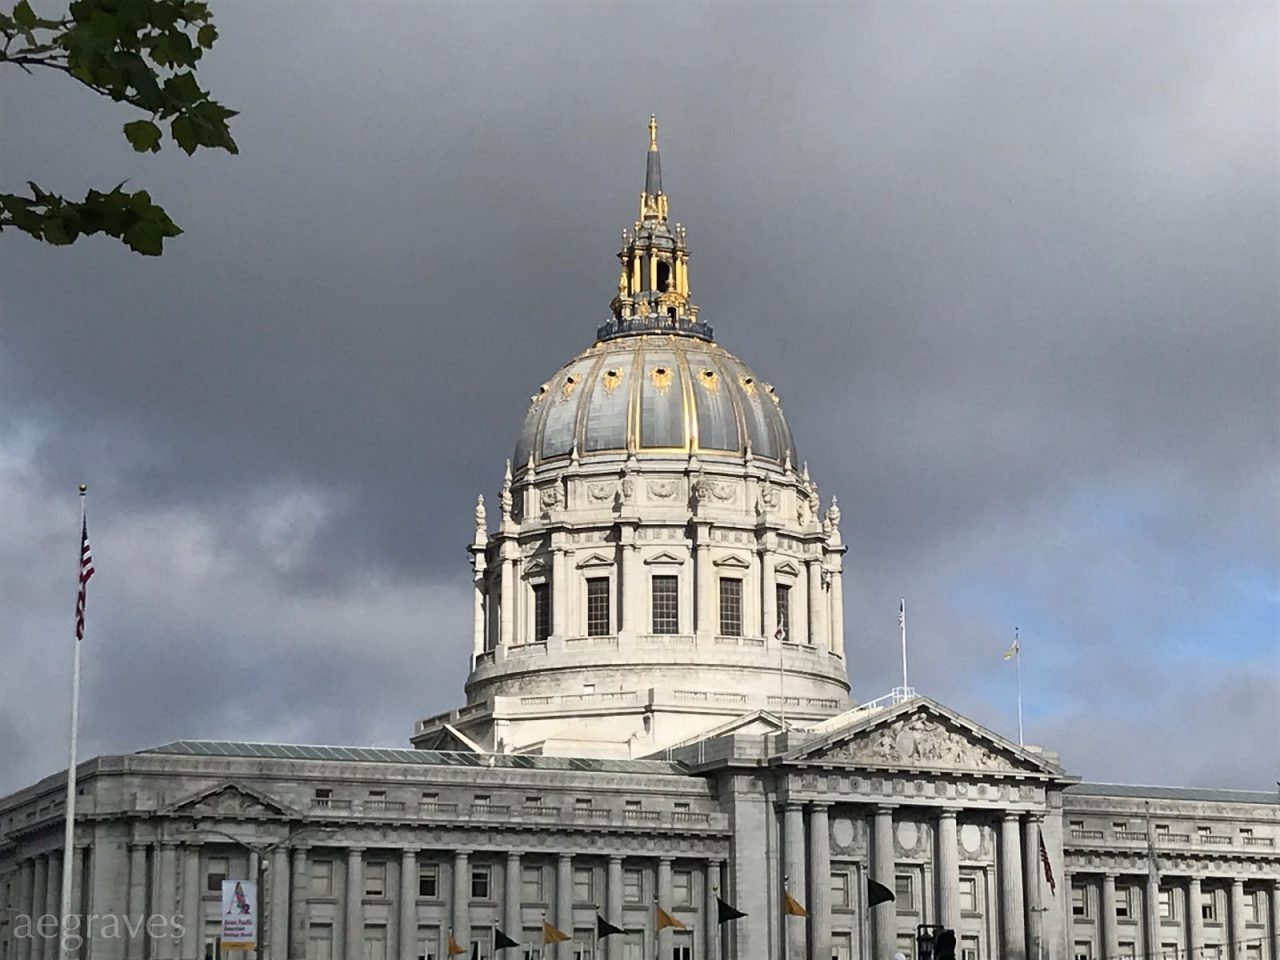 SF City Hall with Dome in Sunlight